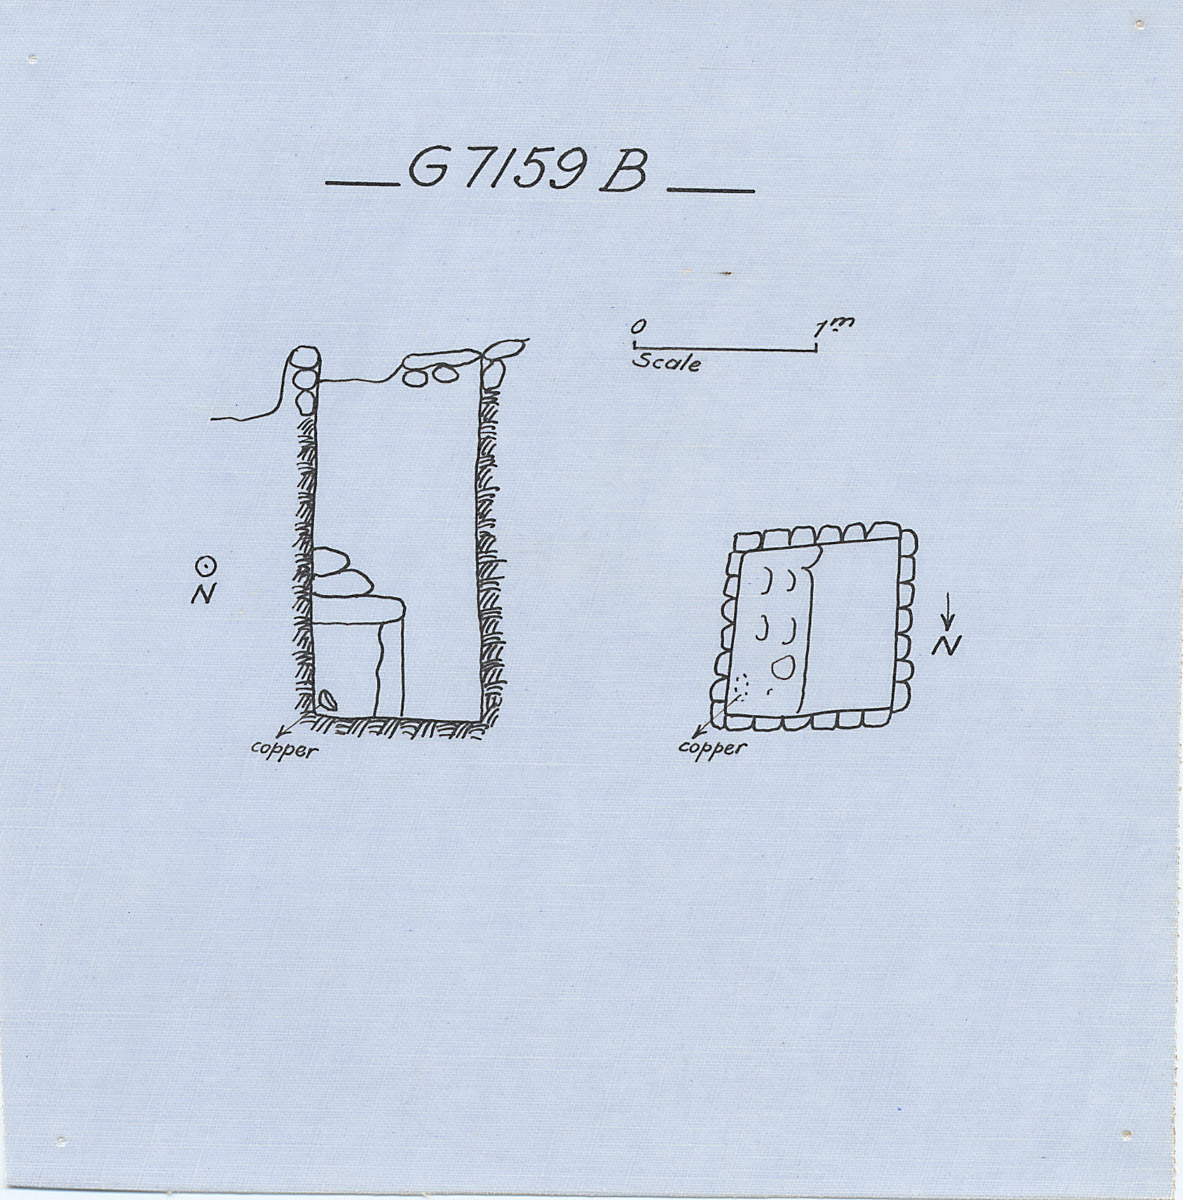 Maps and plans: G 7159, Shaft B